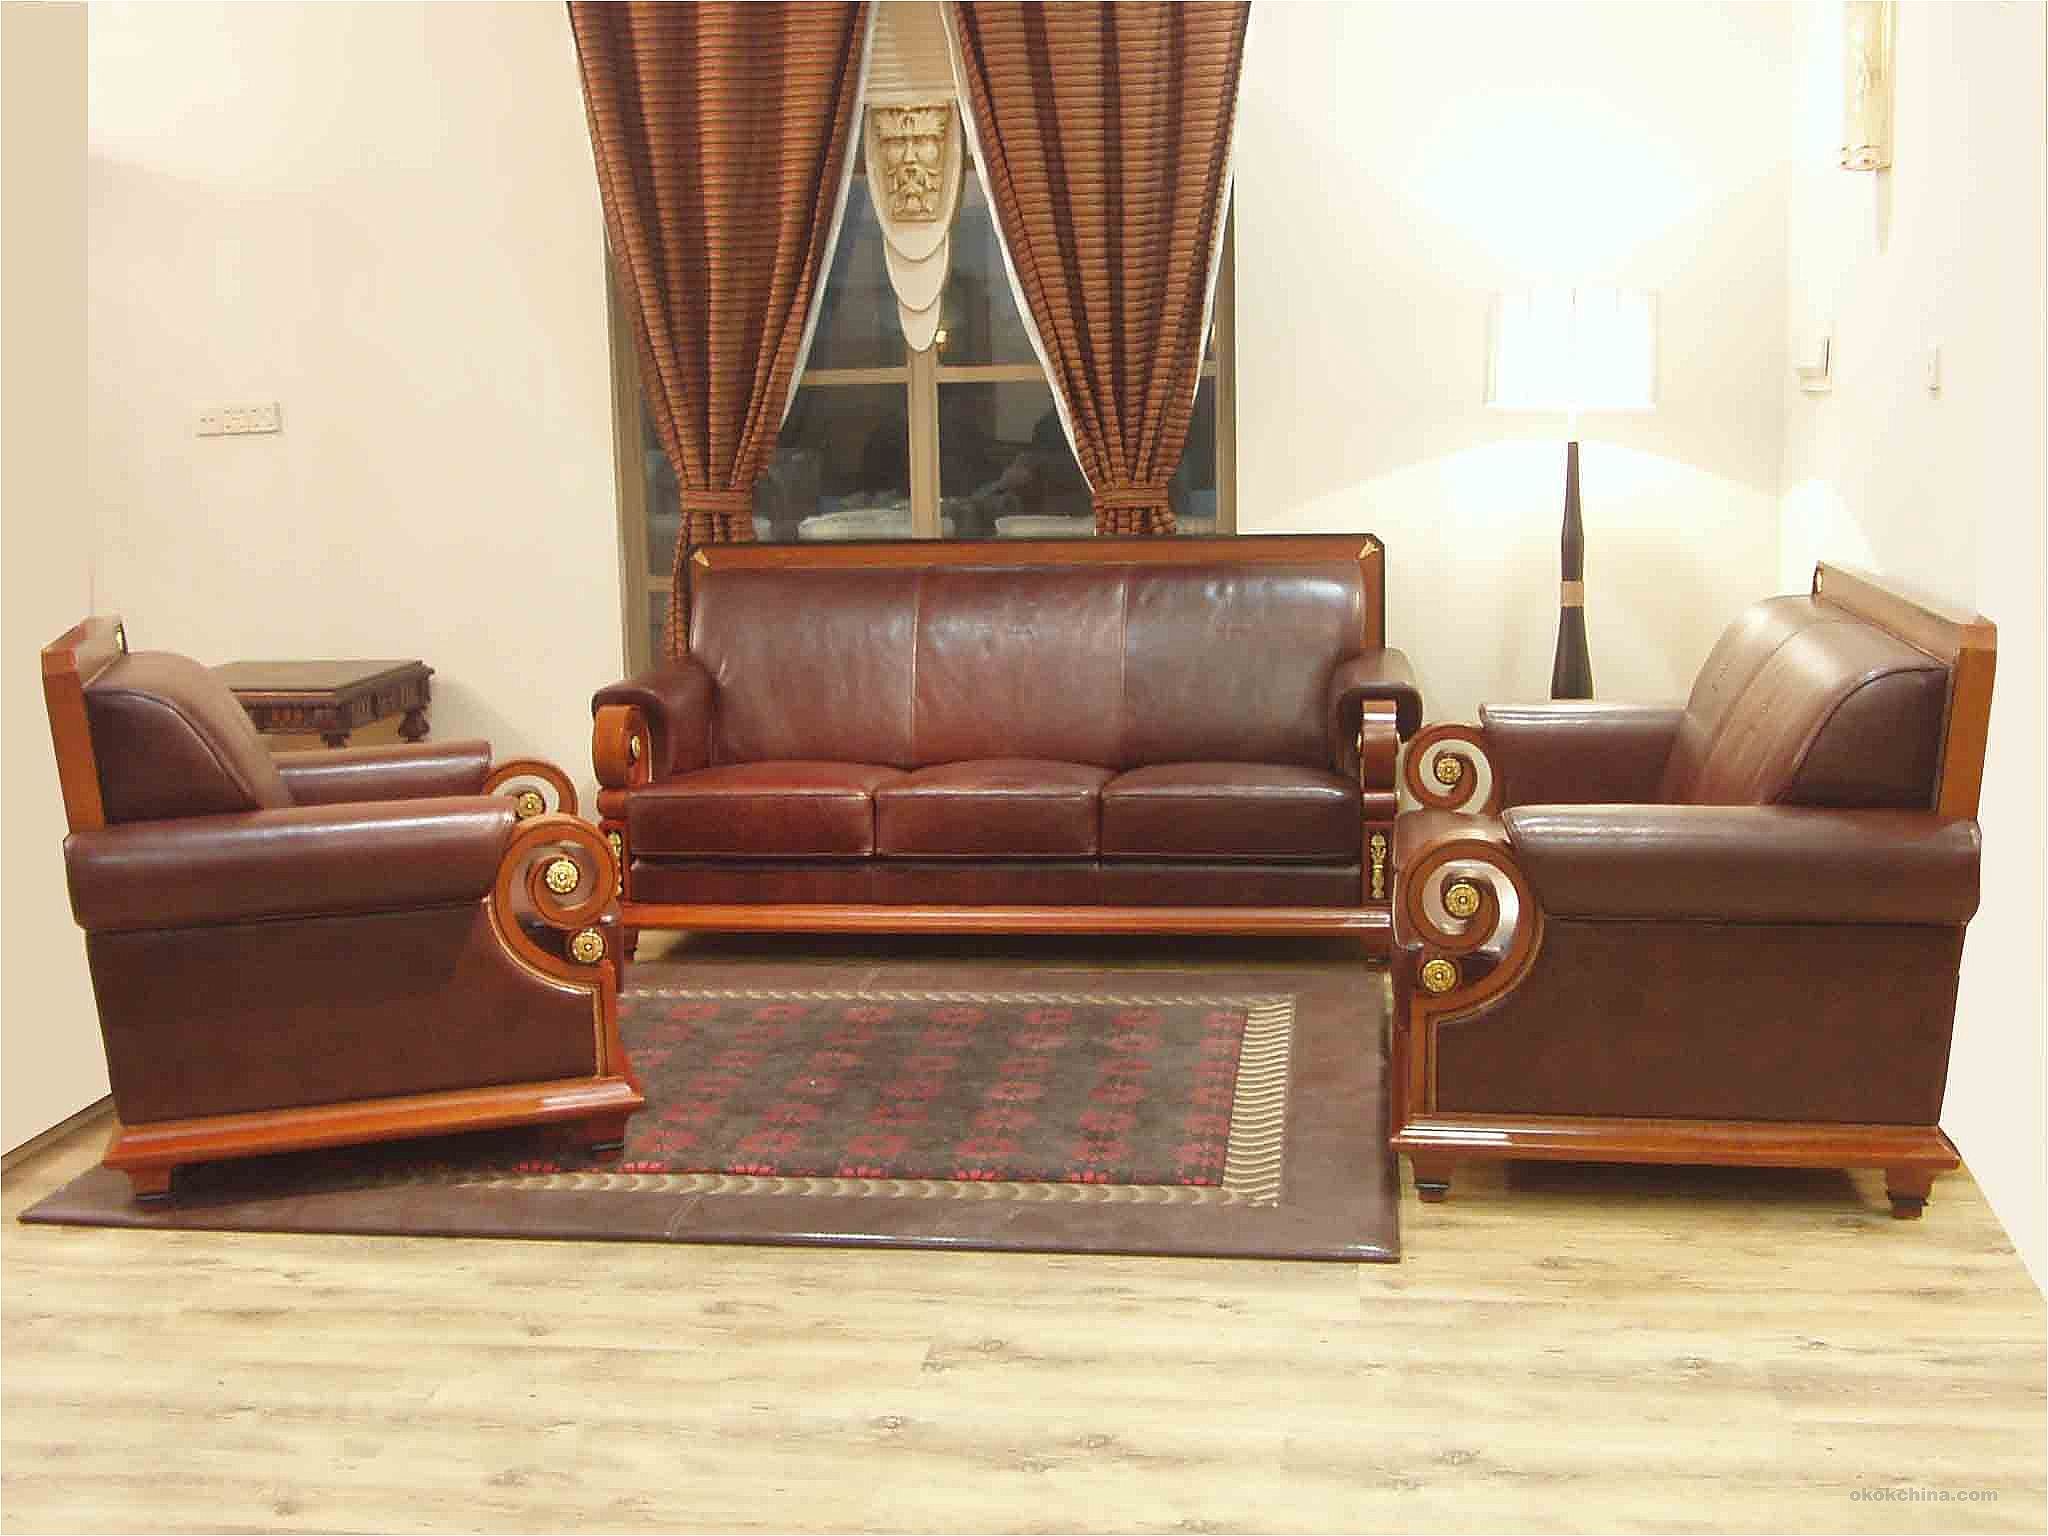 Dark Brown Sofa Typical Details Wooden FLoor Classic Look